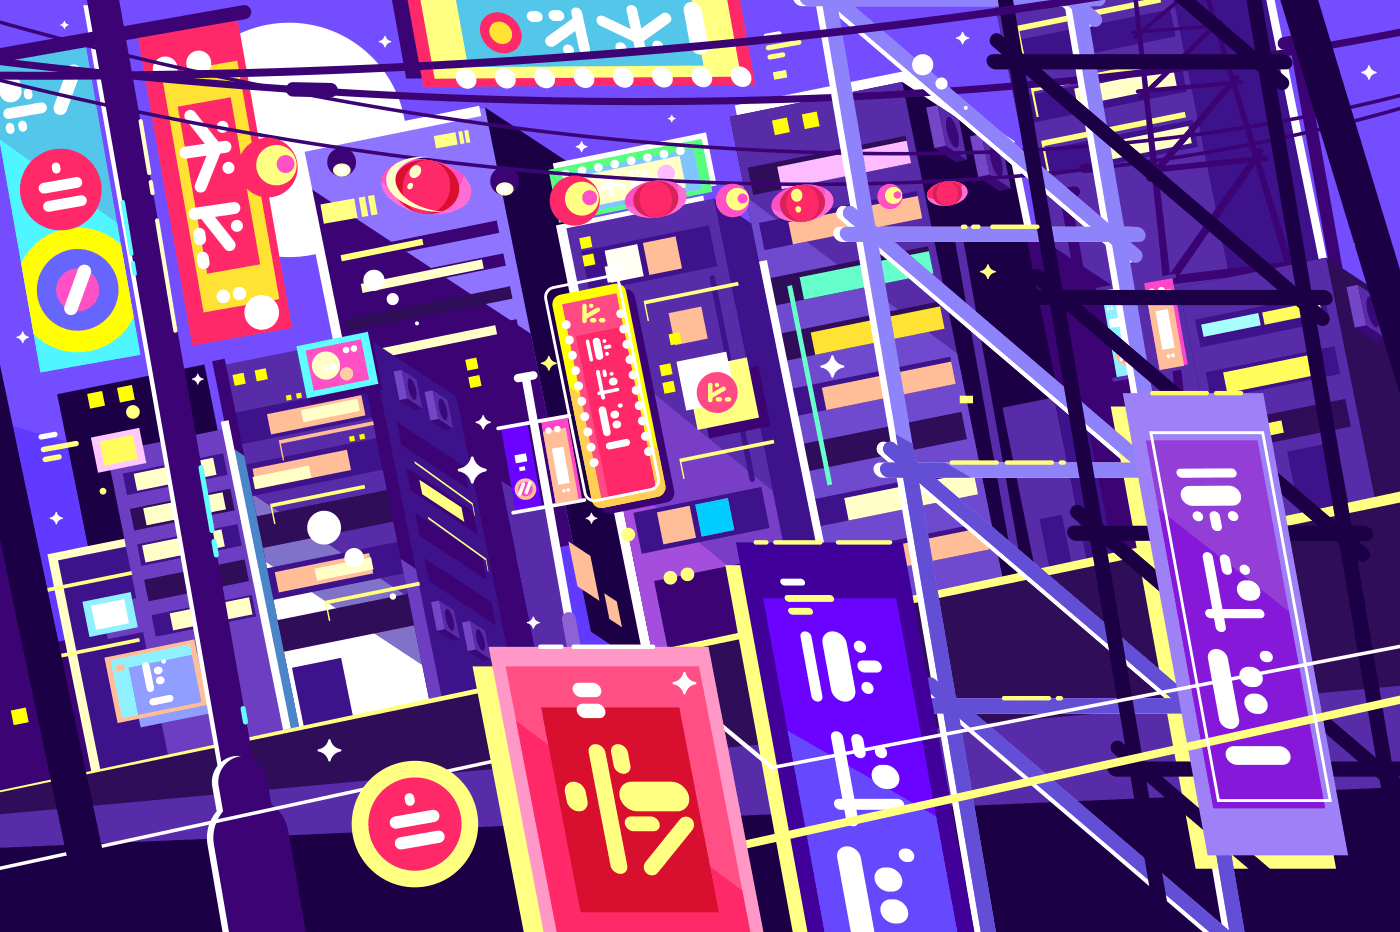 Evening chinese city. Bright neon signs and glowing streets. Vector illustration